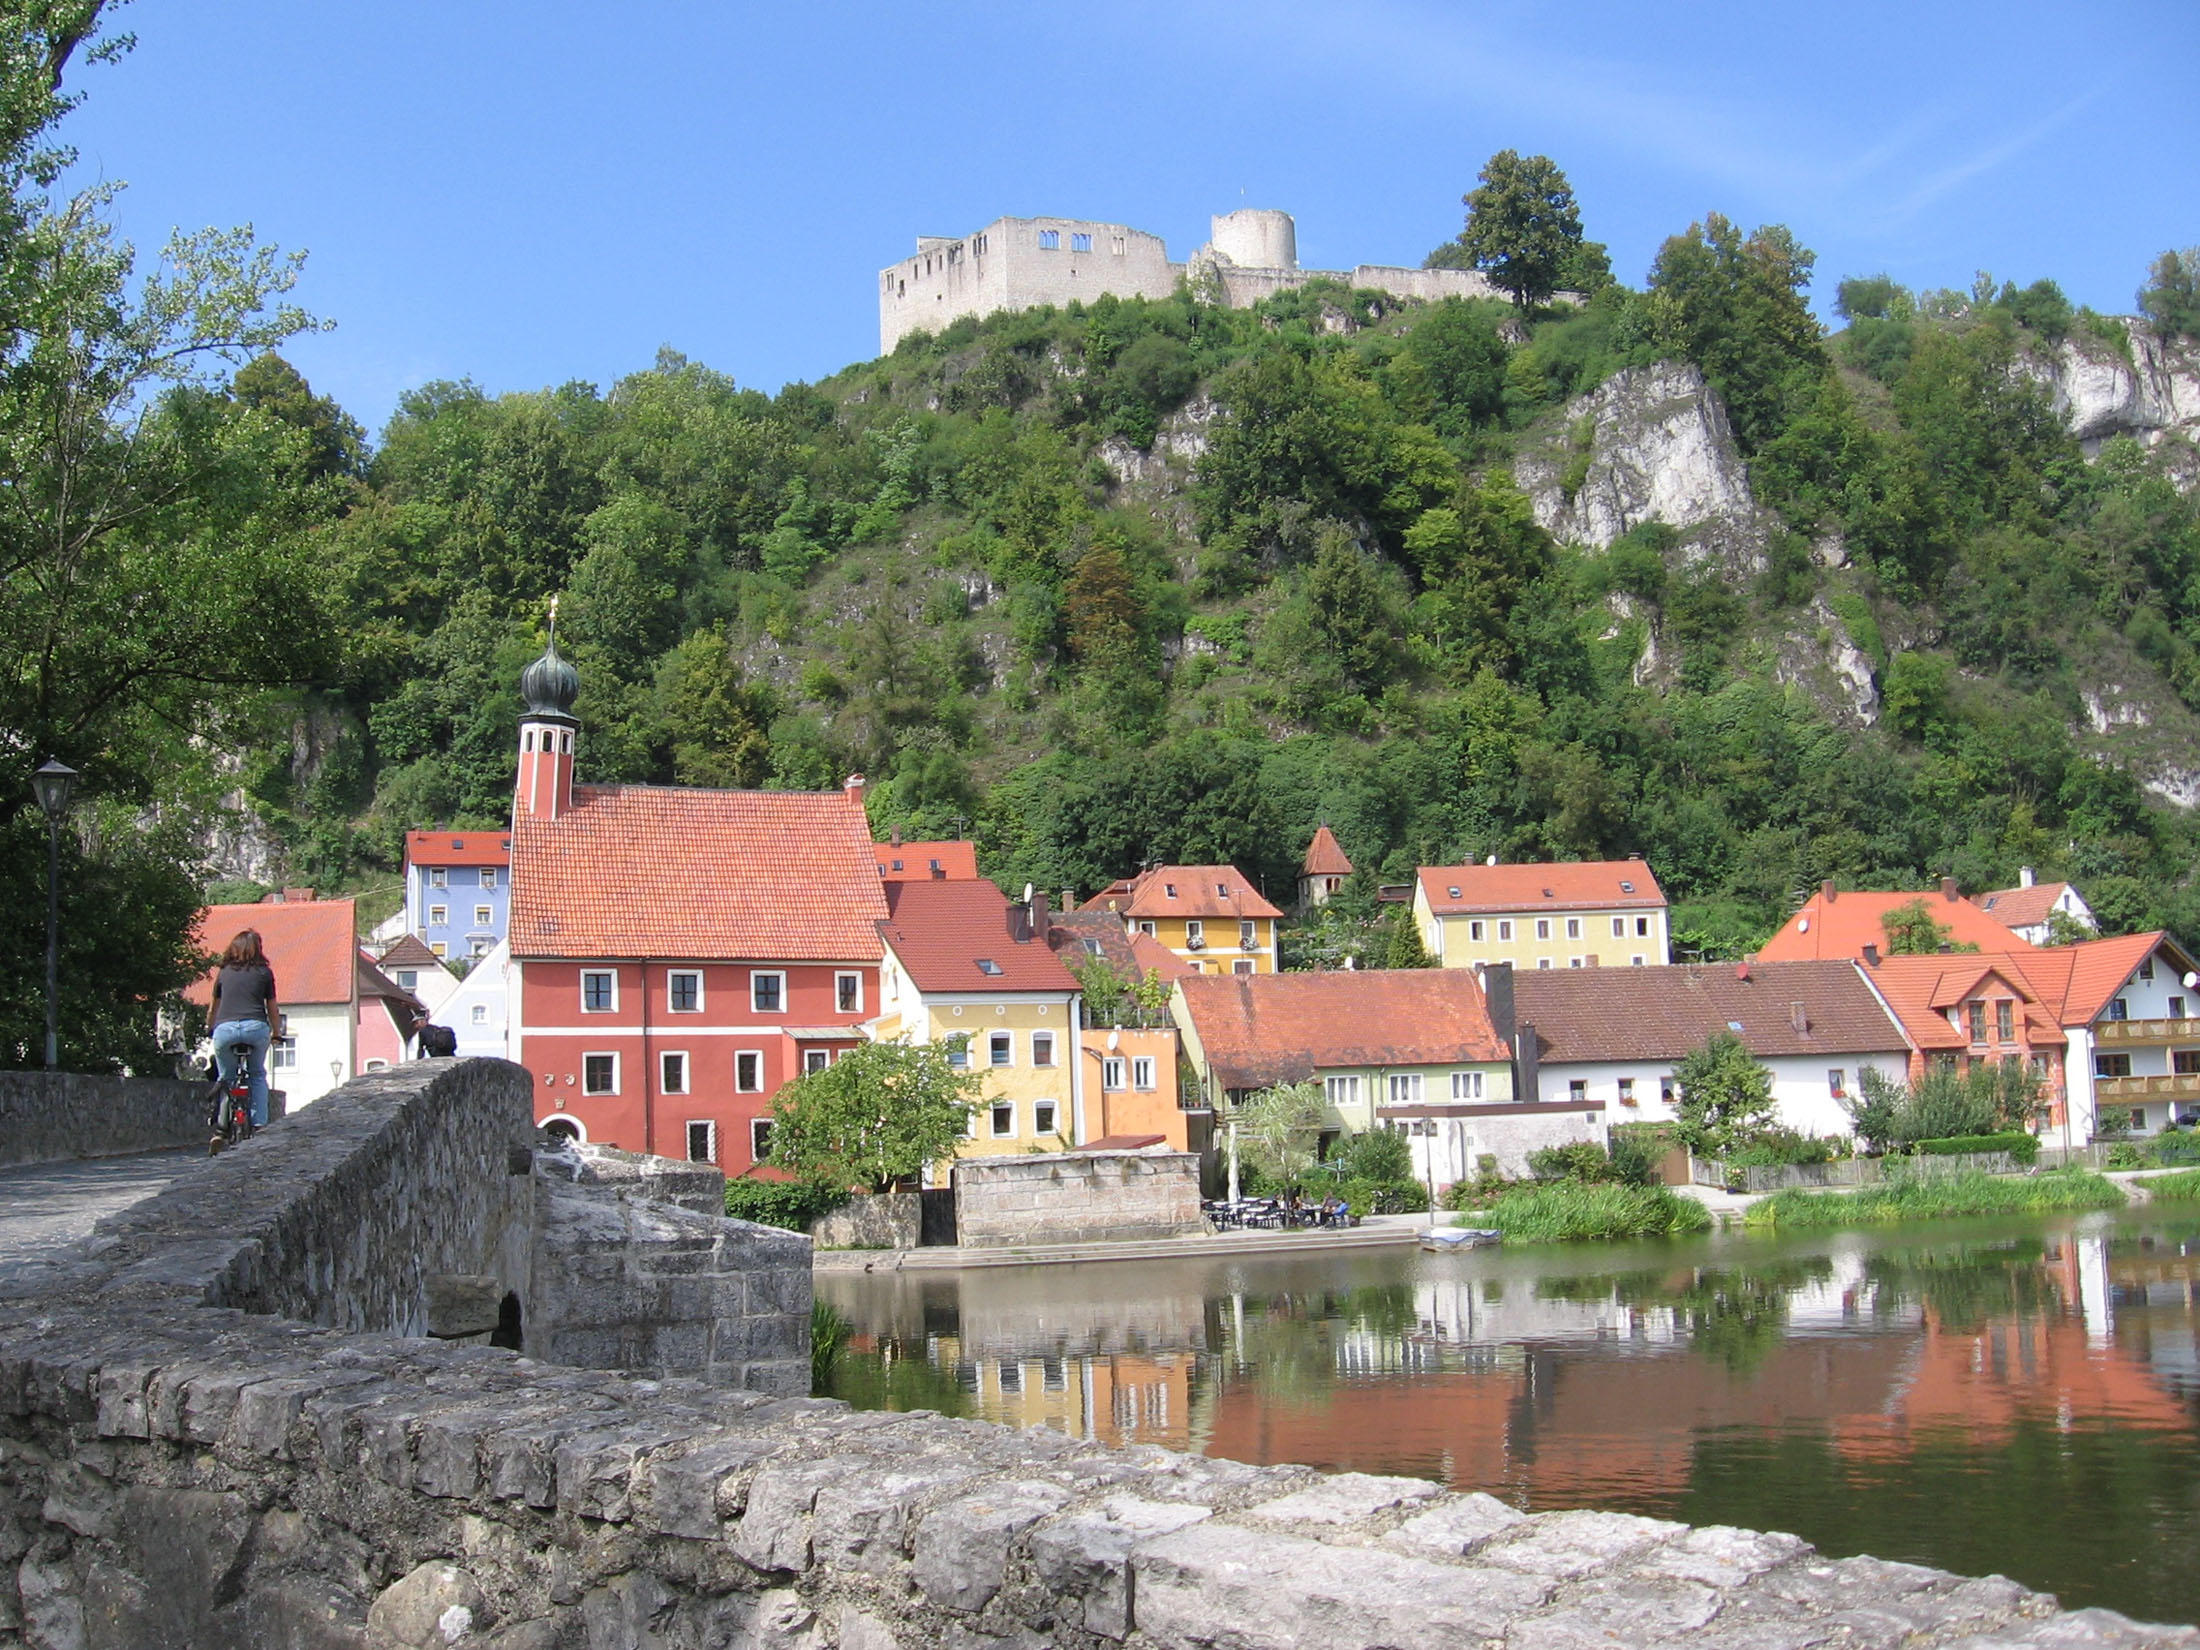 Kallmünz is situated at the confluence of the Naab and the Vils.